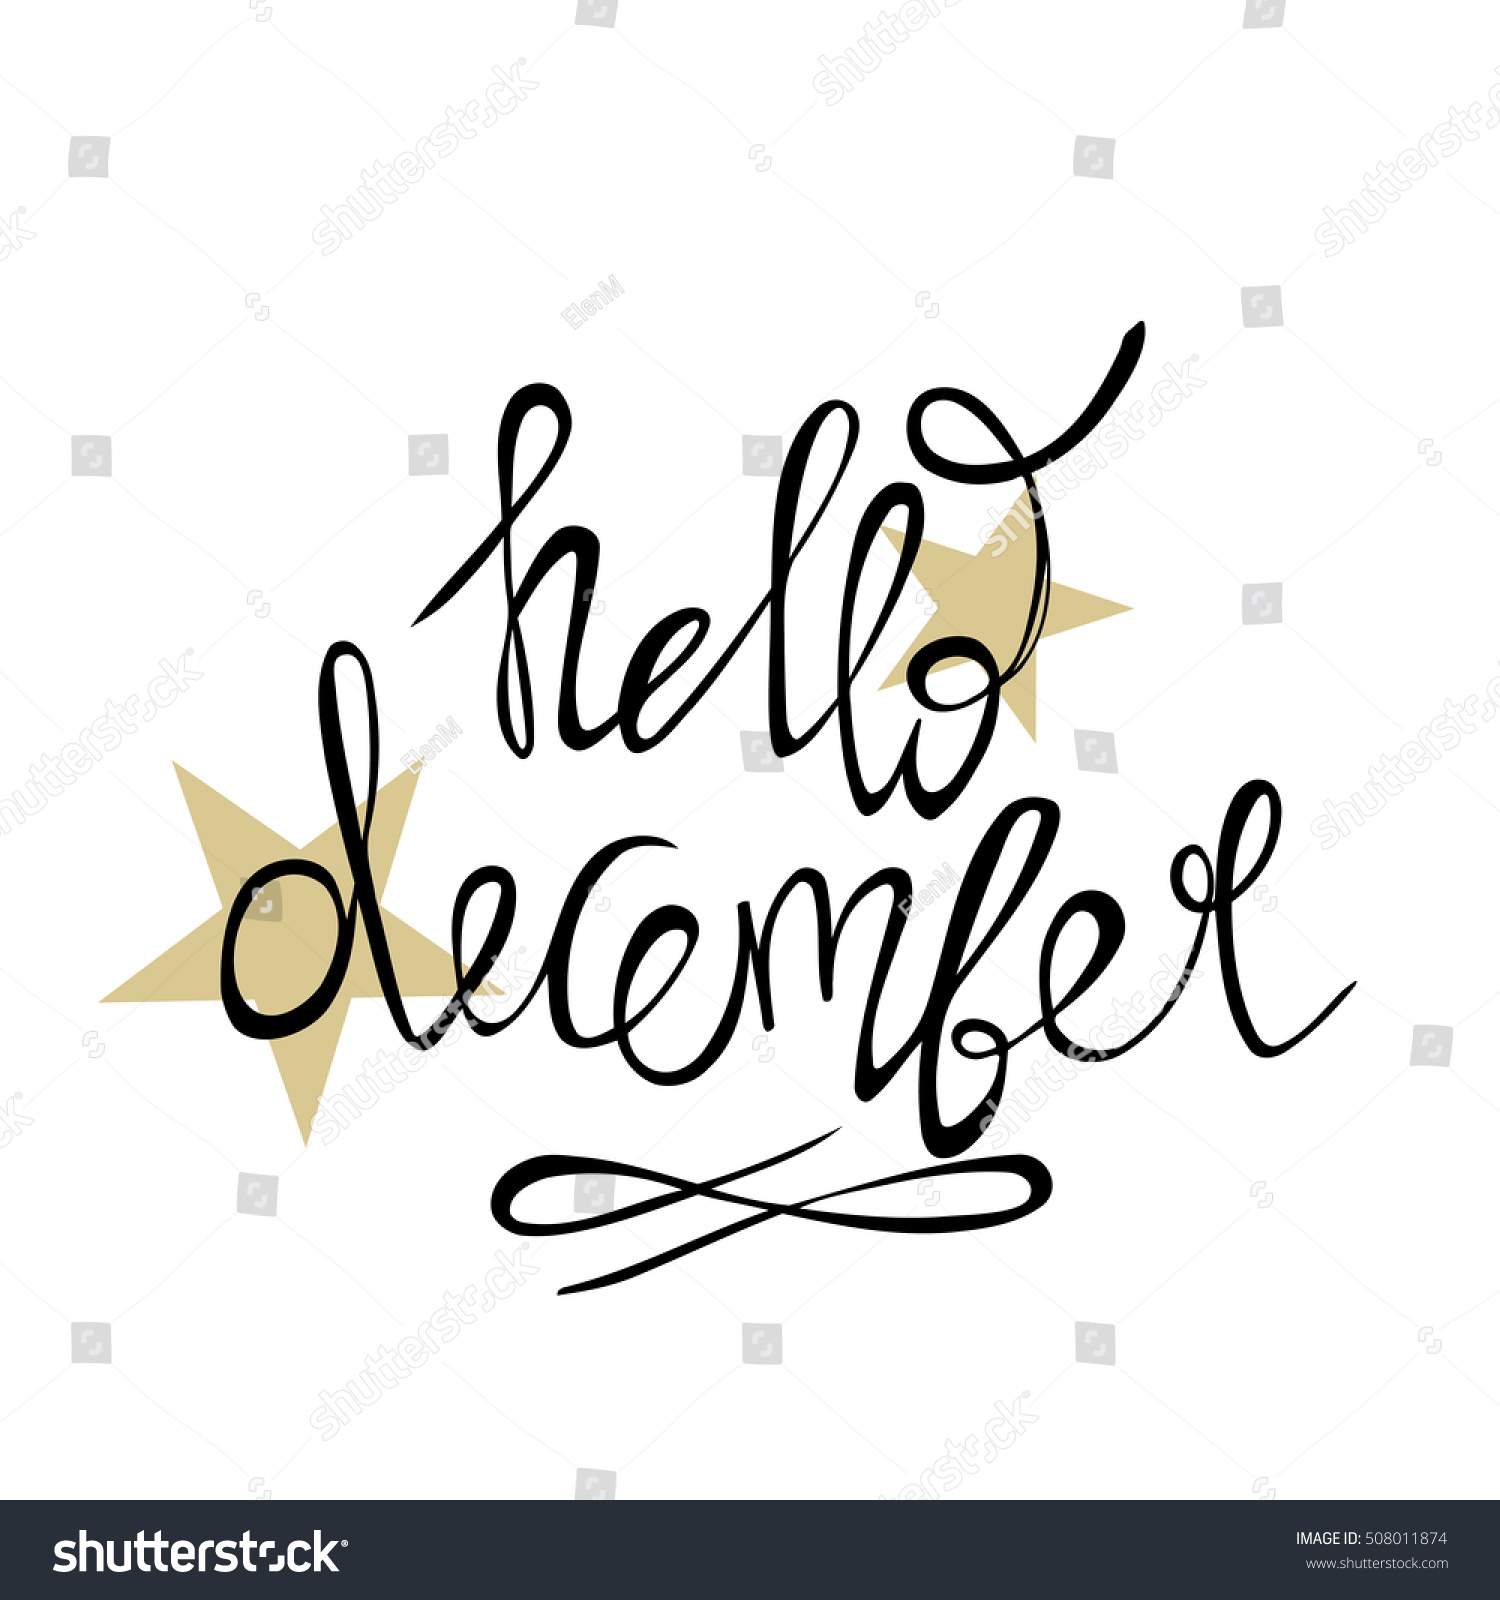 Hello december calligraphy photo